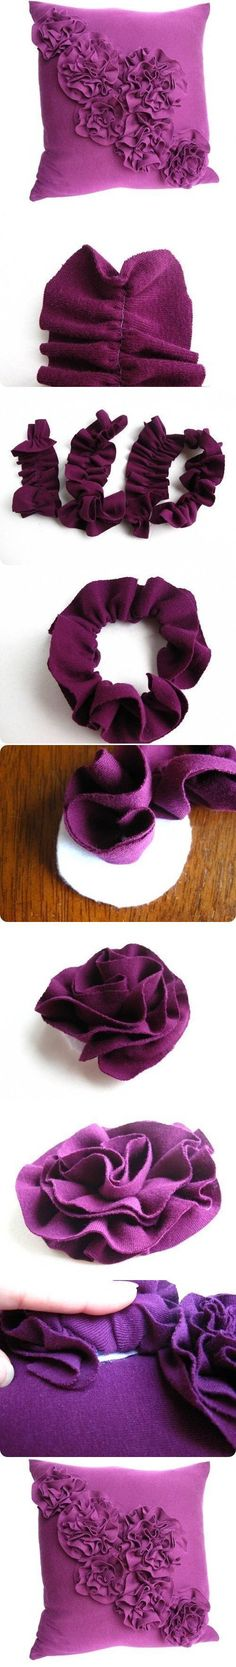 DIY Flower Pillow Decoration DIY Flower Pillow Decoration